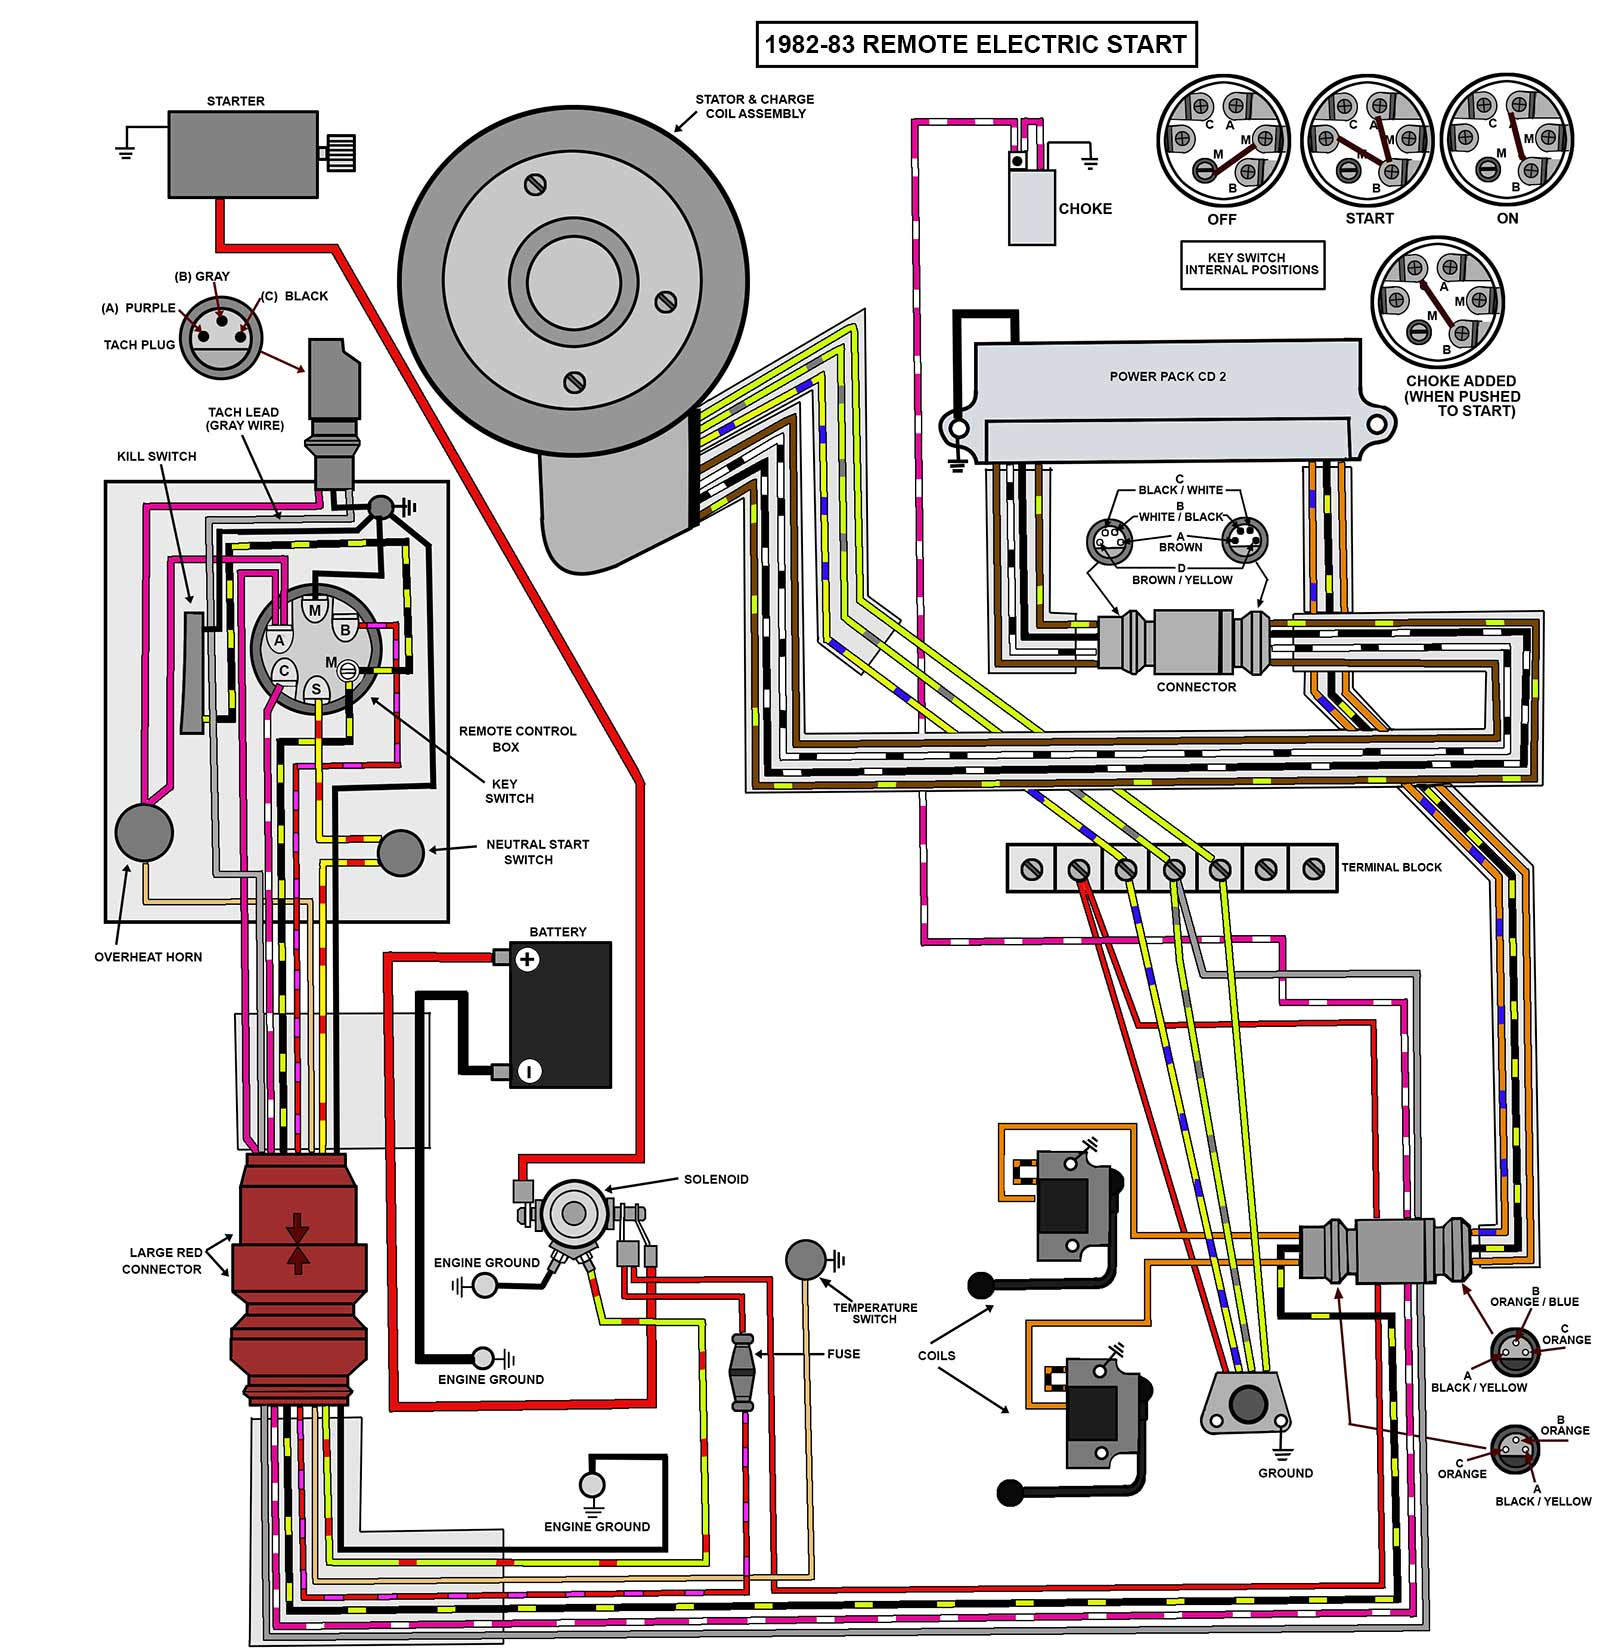 johnson evinrude wiring diagram 5 14 jaun bergbahnen de \u2022 Johnson Outboard Key Switch evinrude johnson outboard wiring diagrams mastertech marine rh maxrules com johnson 115ml79r ignition schematic johnson 120hp